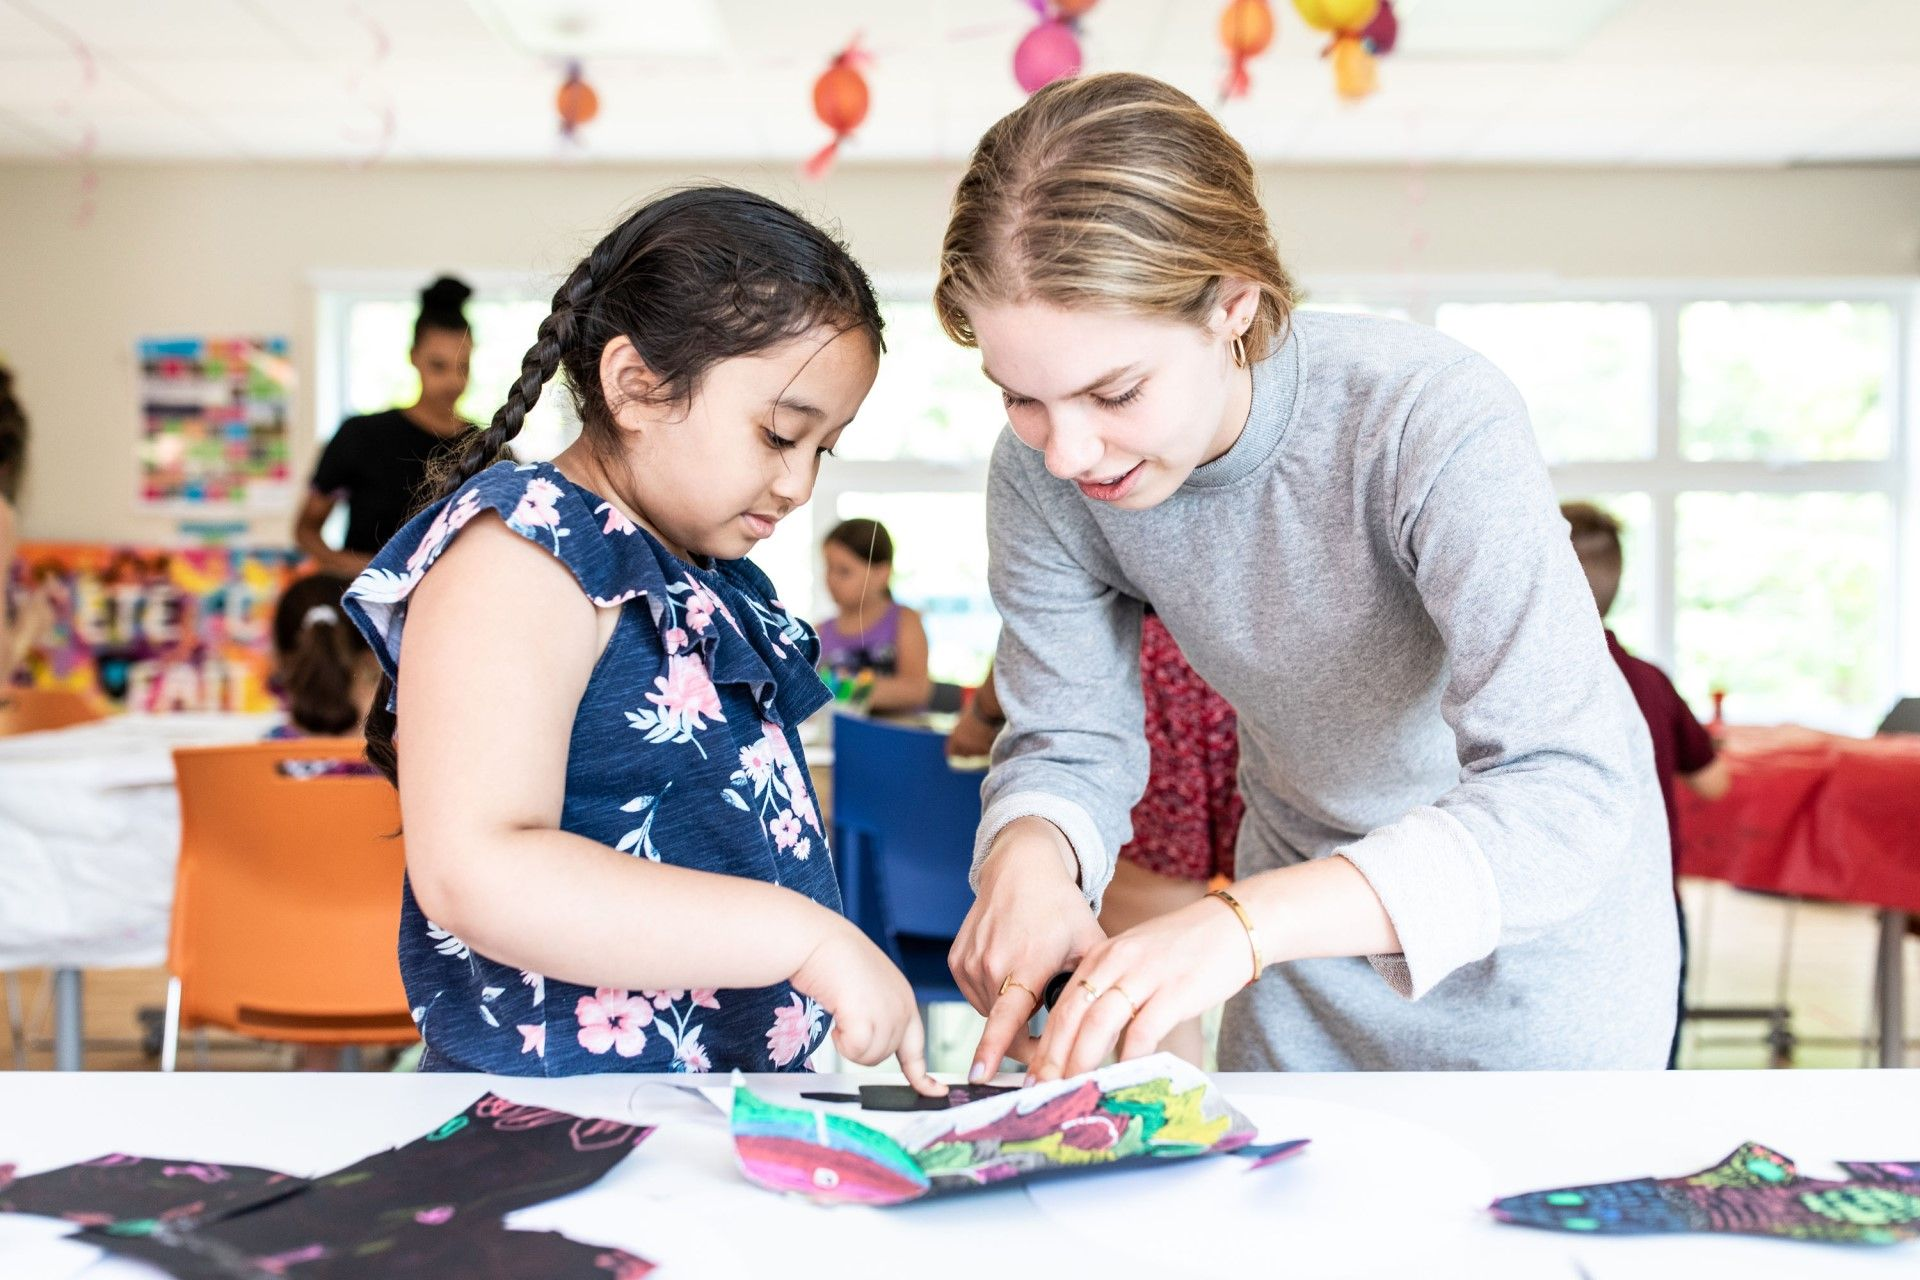 Girl doing crafts accompanied by a mediator